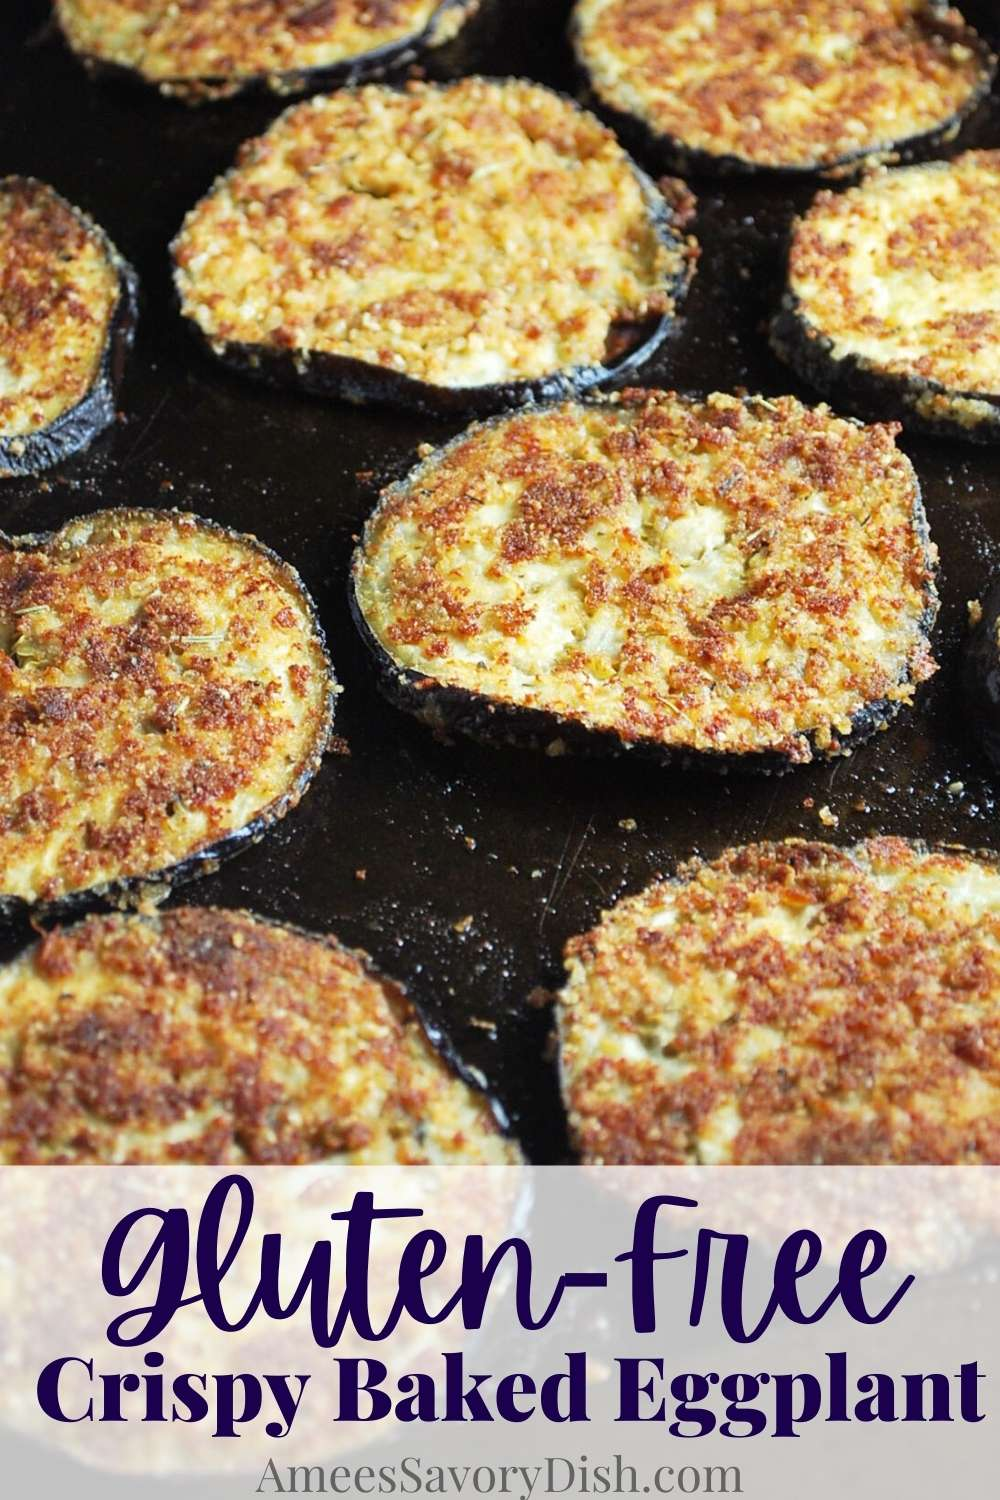 This easy Crispy Baked Eggplant is the best way to make crispy eggplant slices with healthier, gluten-free ingredients. Great as a snack, appetizer, or used to make eggplant parmesan and eggplant mozzarella stacks. via @Ameessavorydish